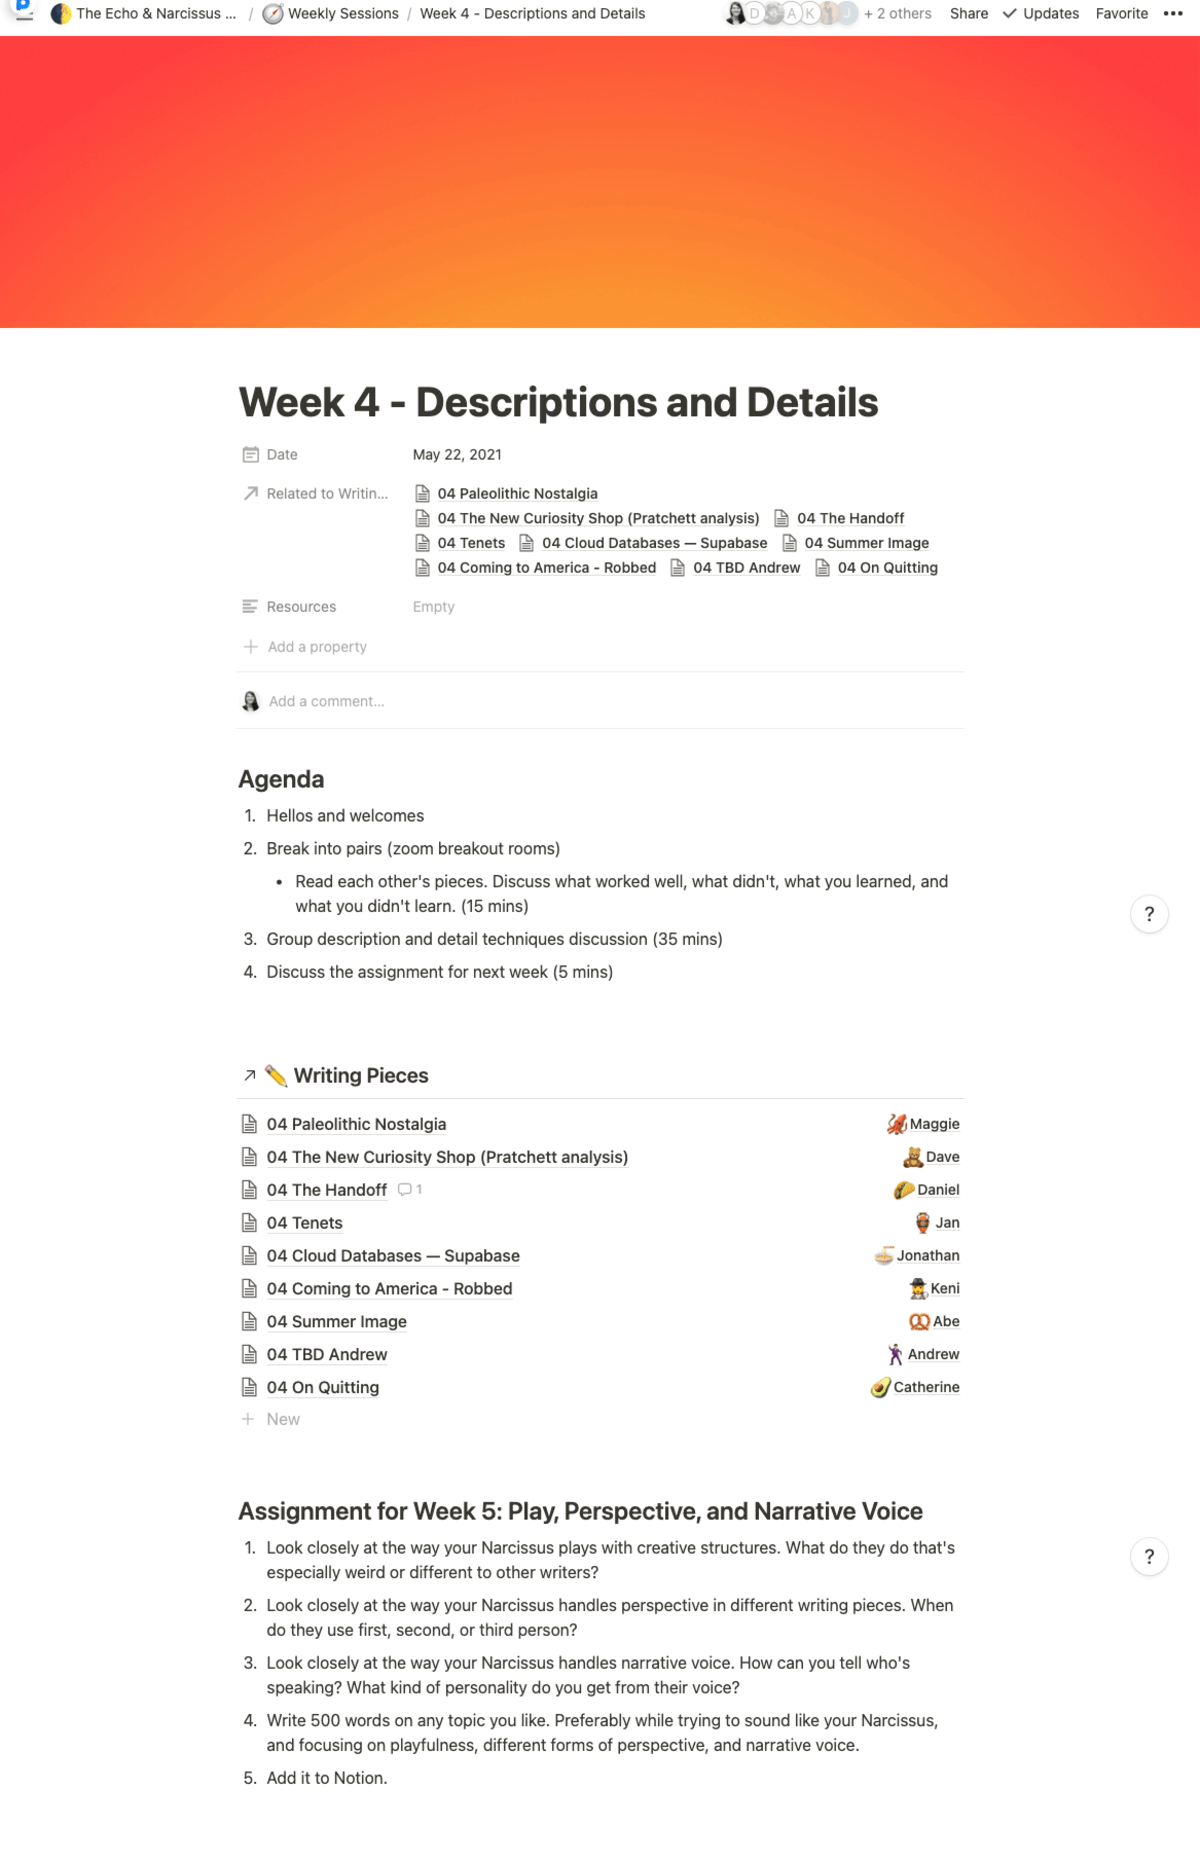 The agenda, writing pieces, and homework assignment for week 4 of the club